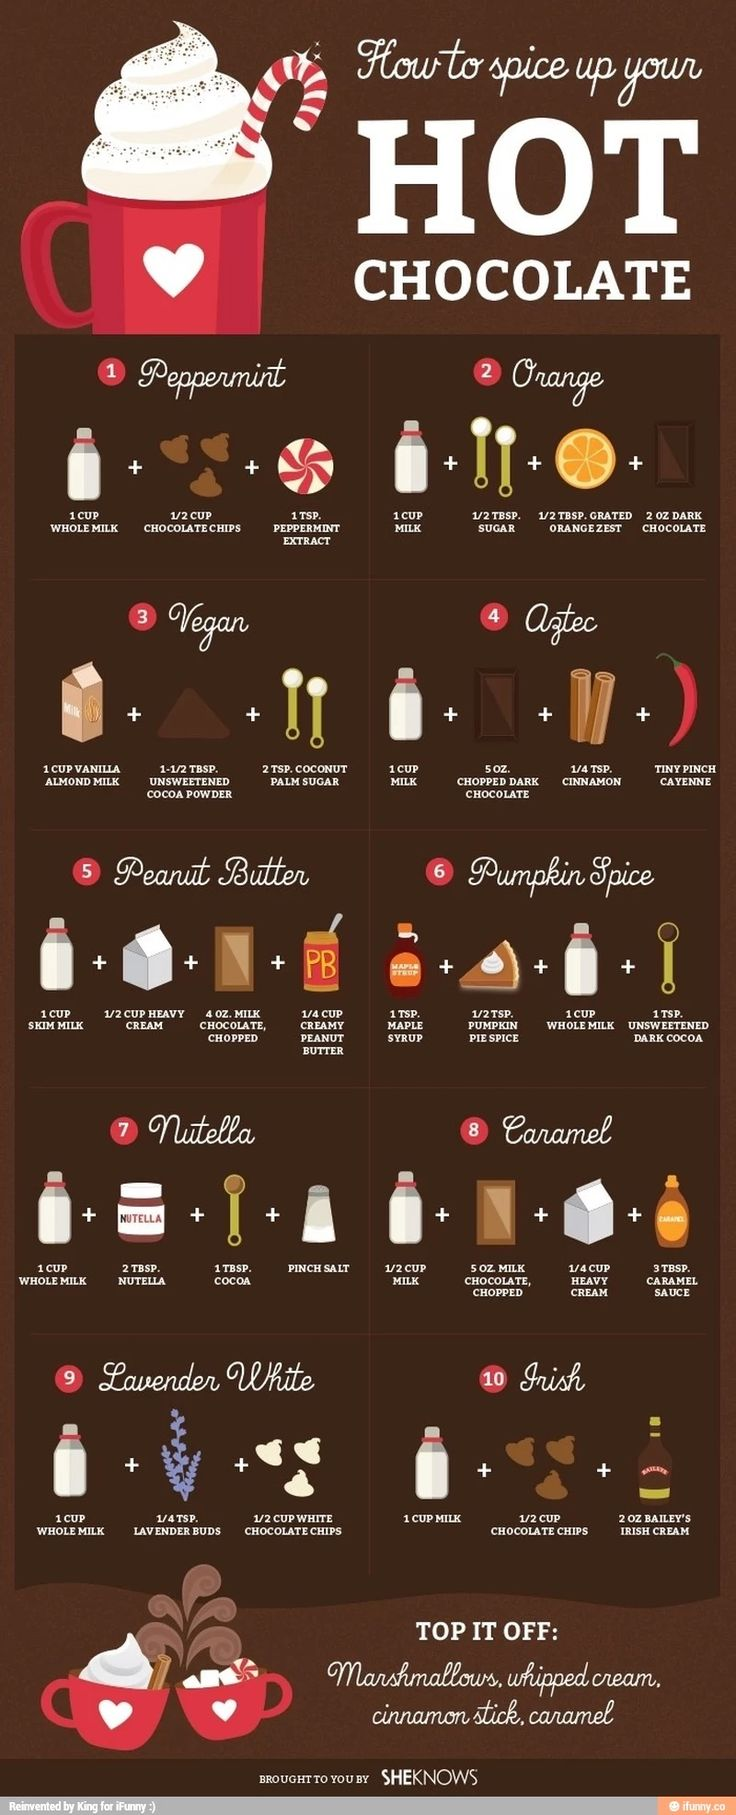 Hot chocolate - flavor ideas